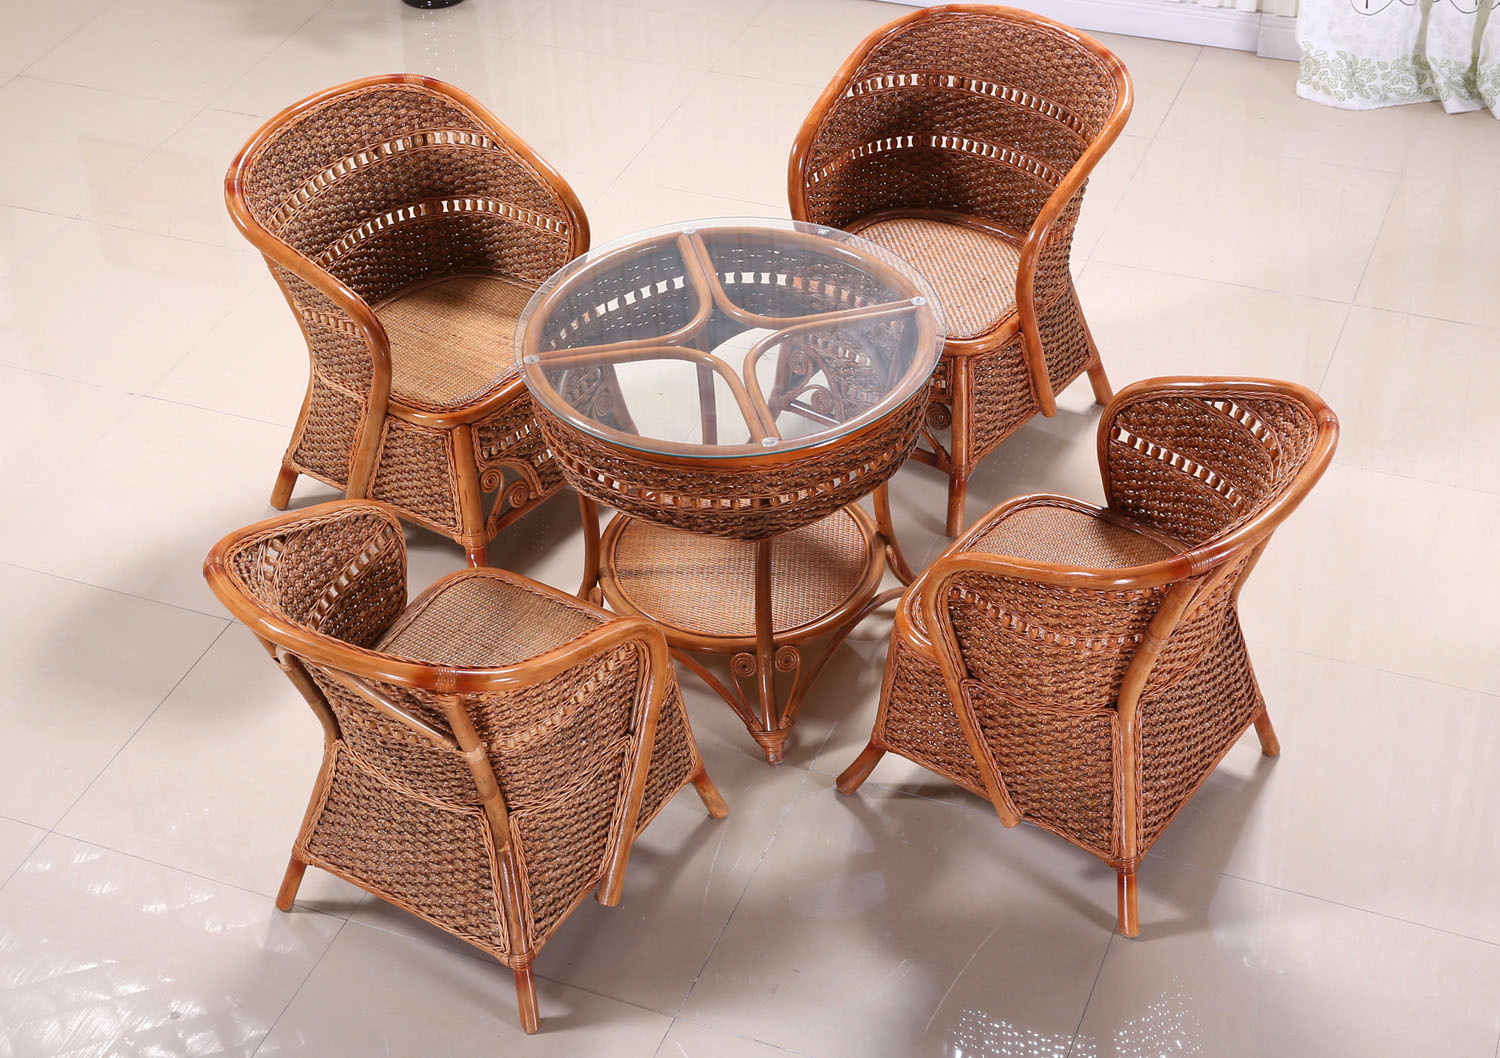 Sarah wicker chair really rattan chairs coffee table five sets of three sets of combination really rattan products high special